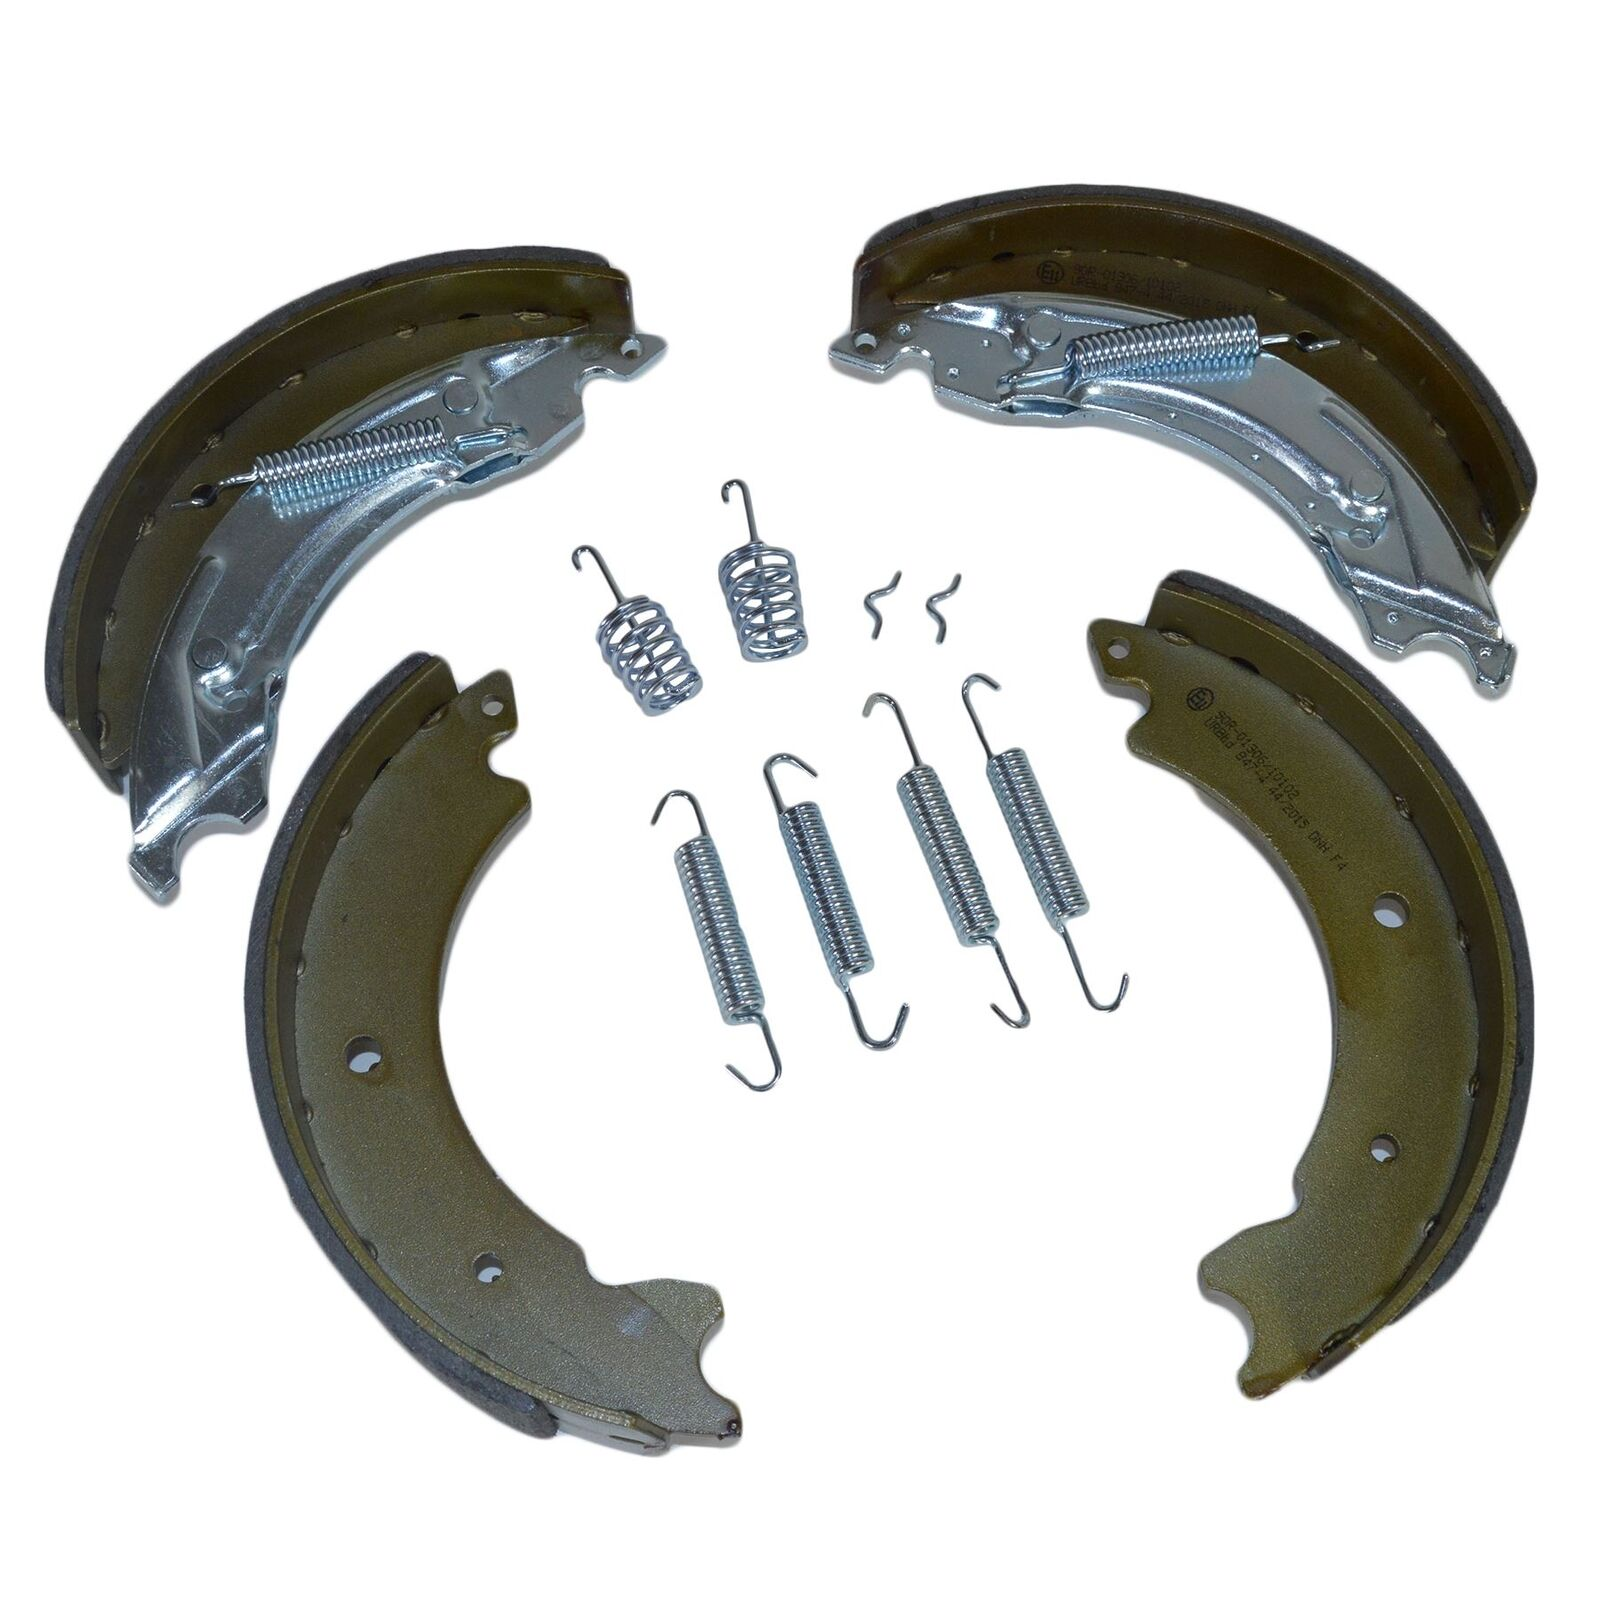 Trailer Brake shoes Replacements Spring Kit 203mm x 40mm KNOTT Style Axles